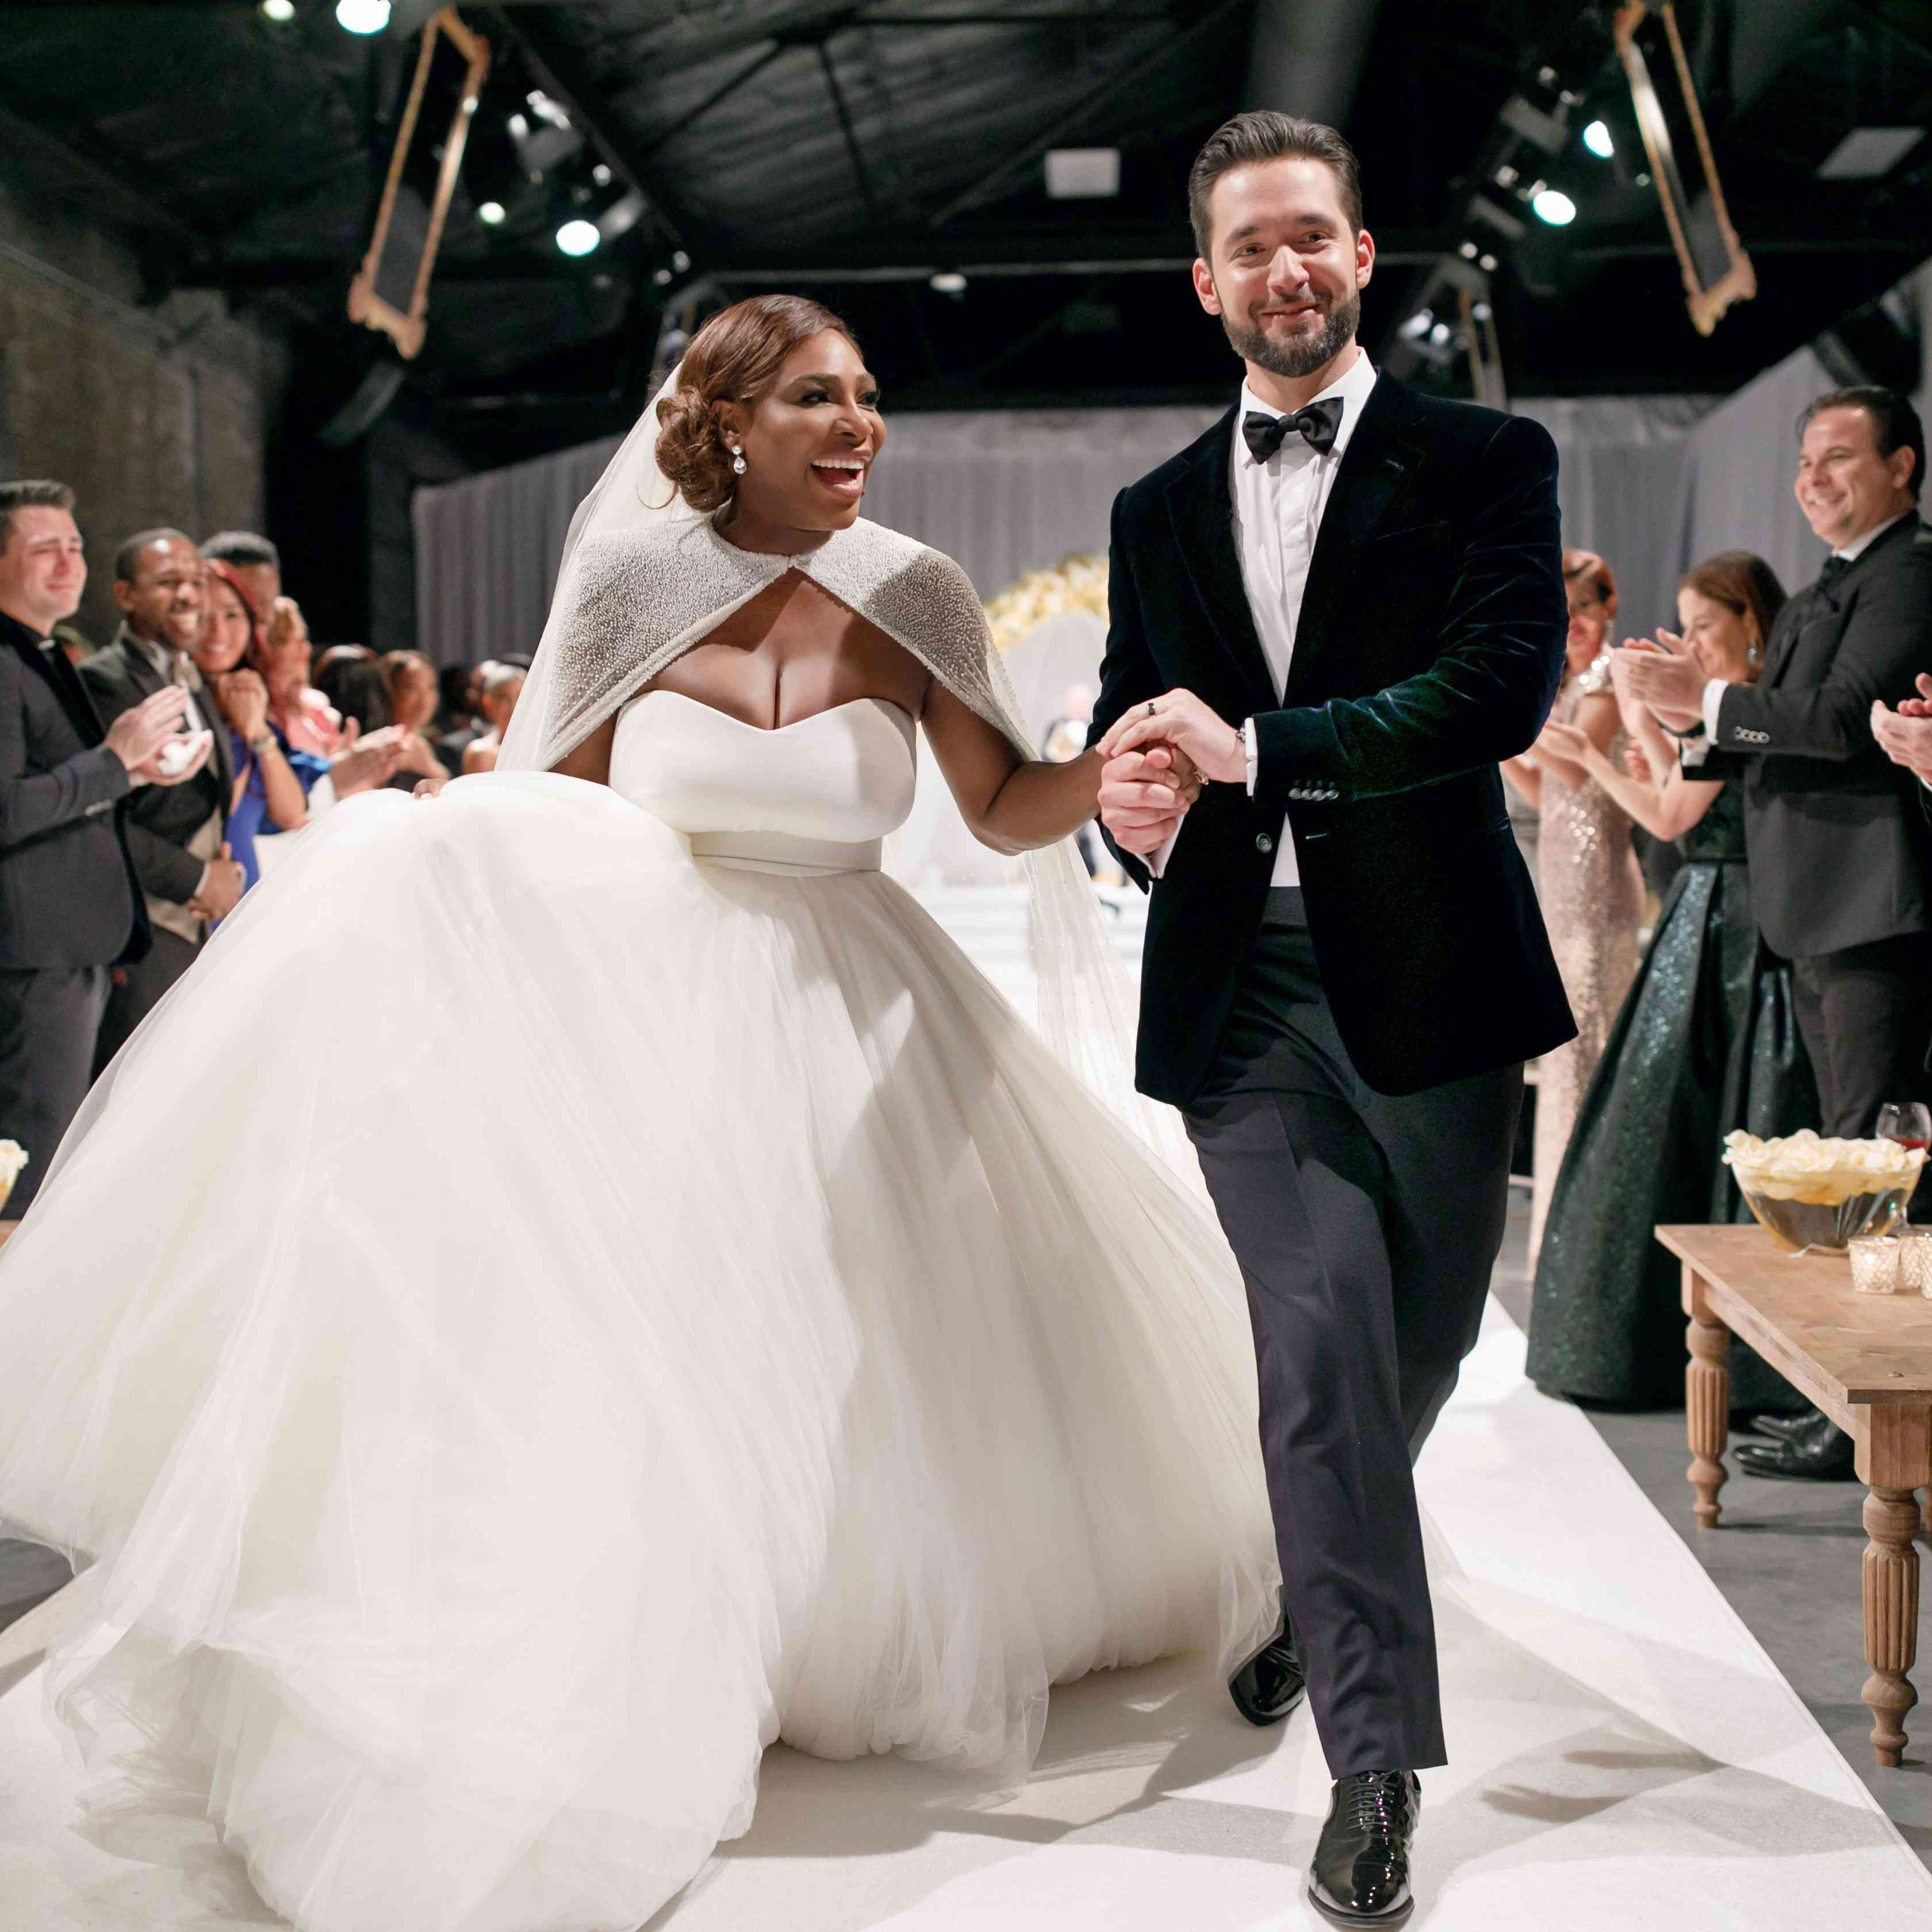 Alexis Ohanian Celebrates First Wedding Anniversary With Serena